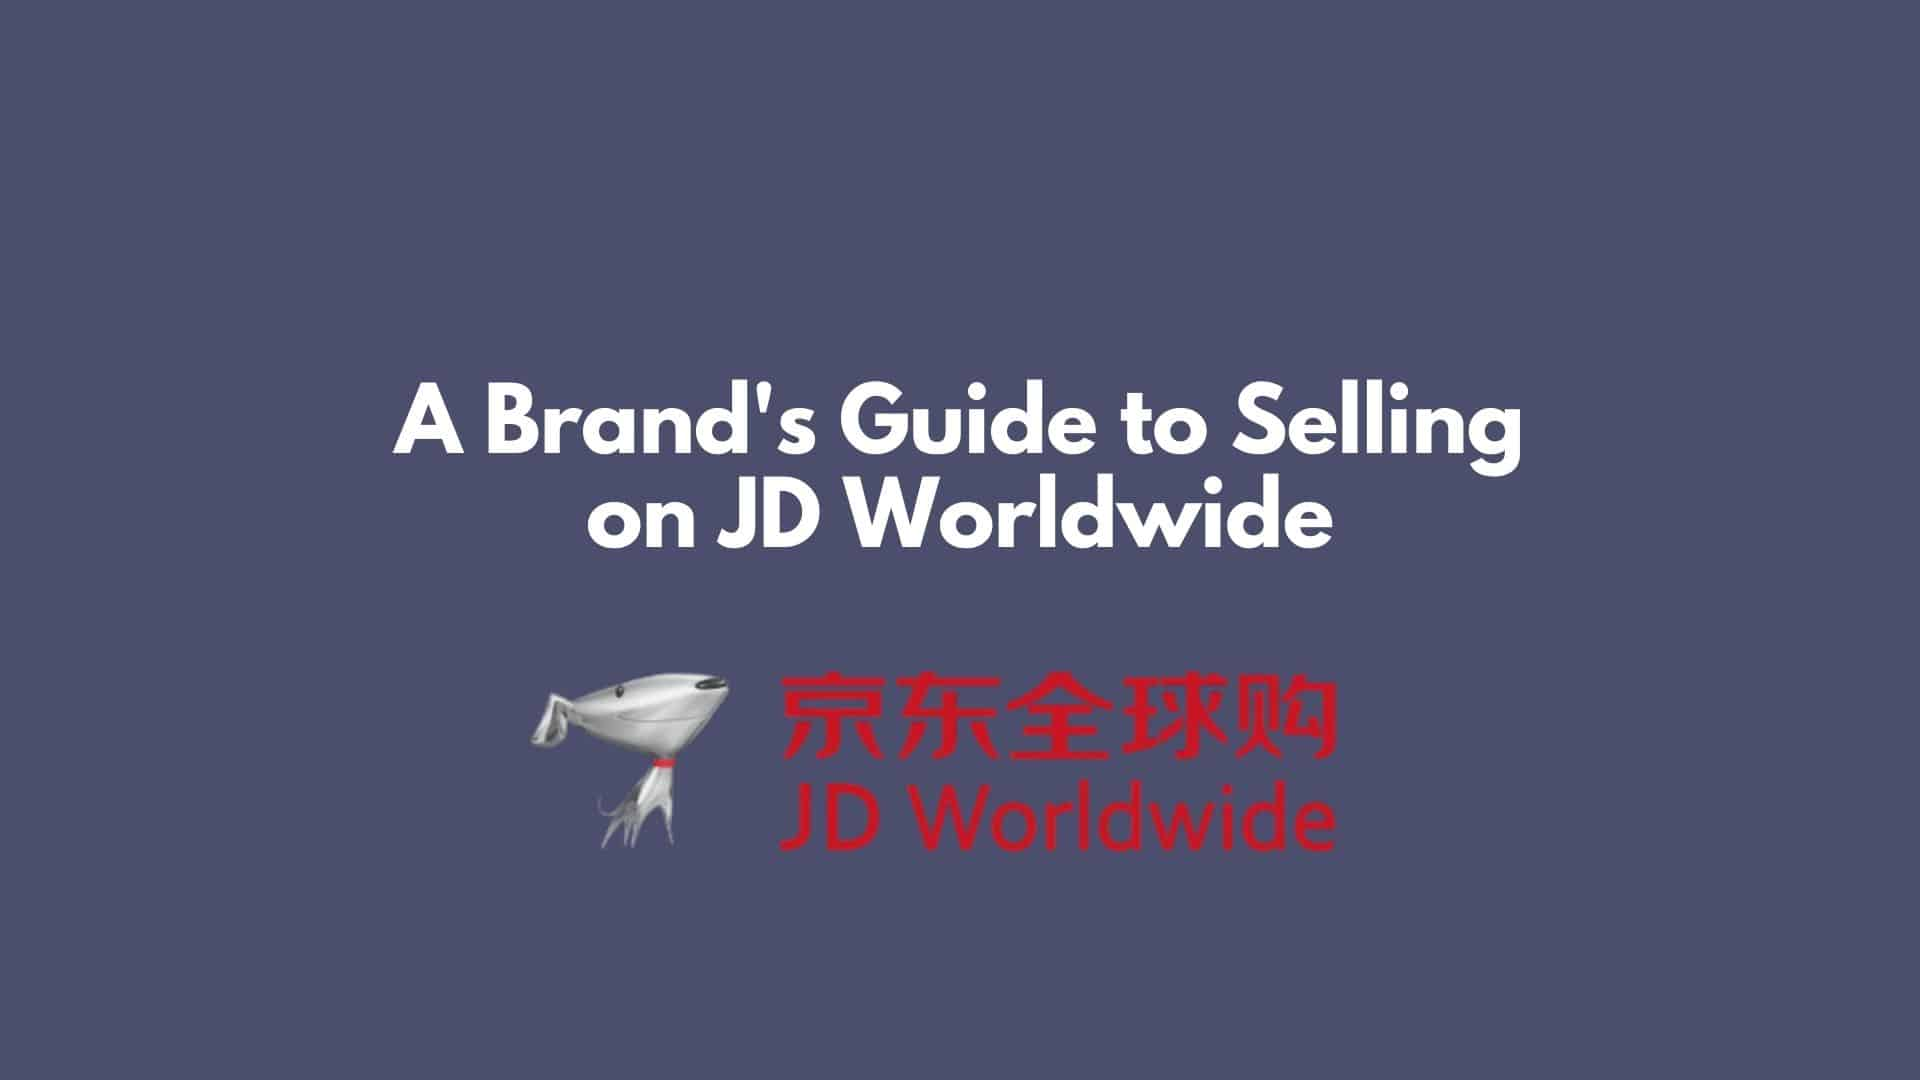 A Brand's Guide to Selling on JD Worldwide